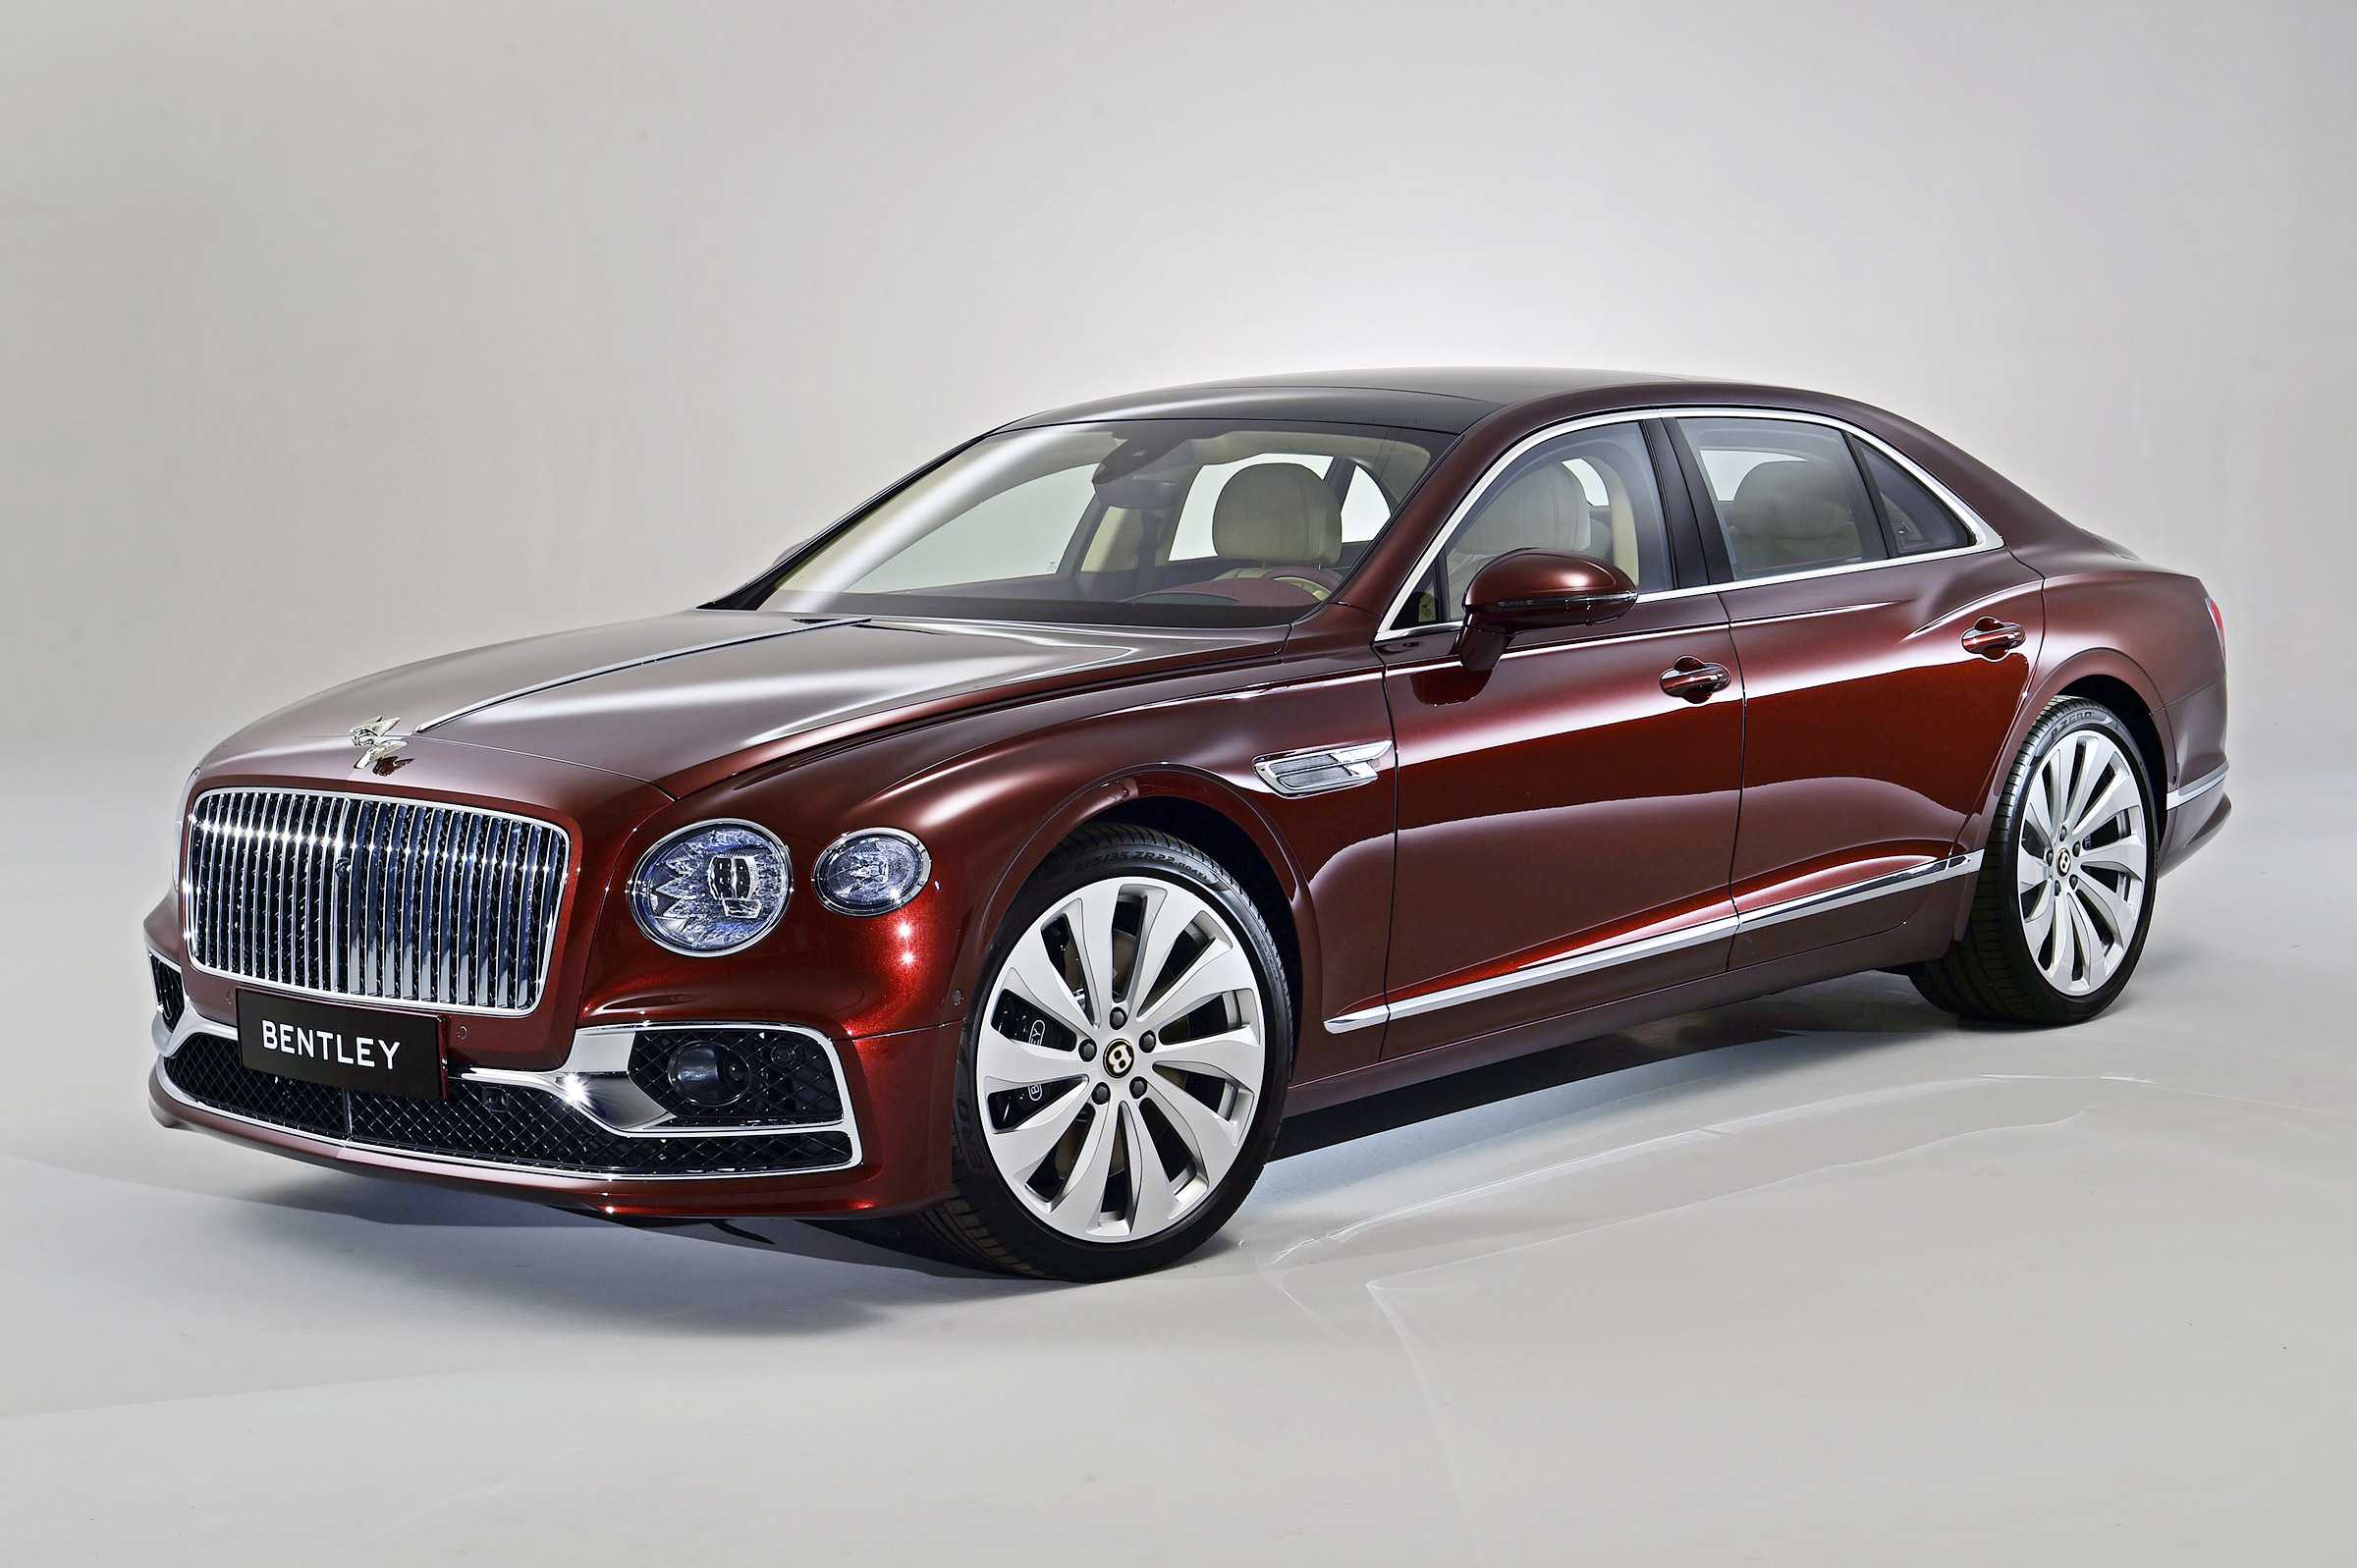 New 2019 Bentley Flying Spur marks brand's centenary ...